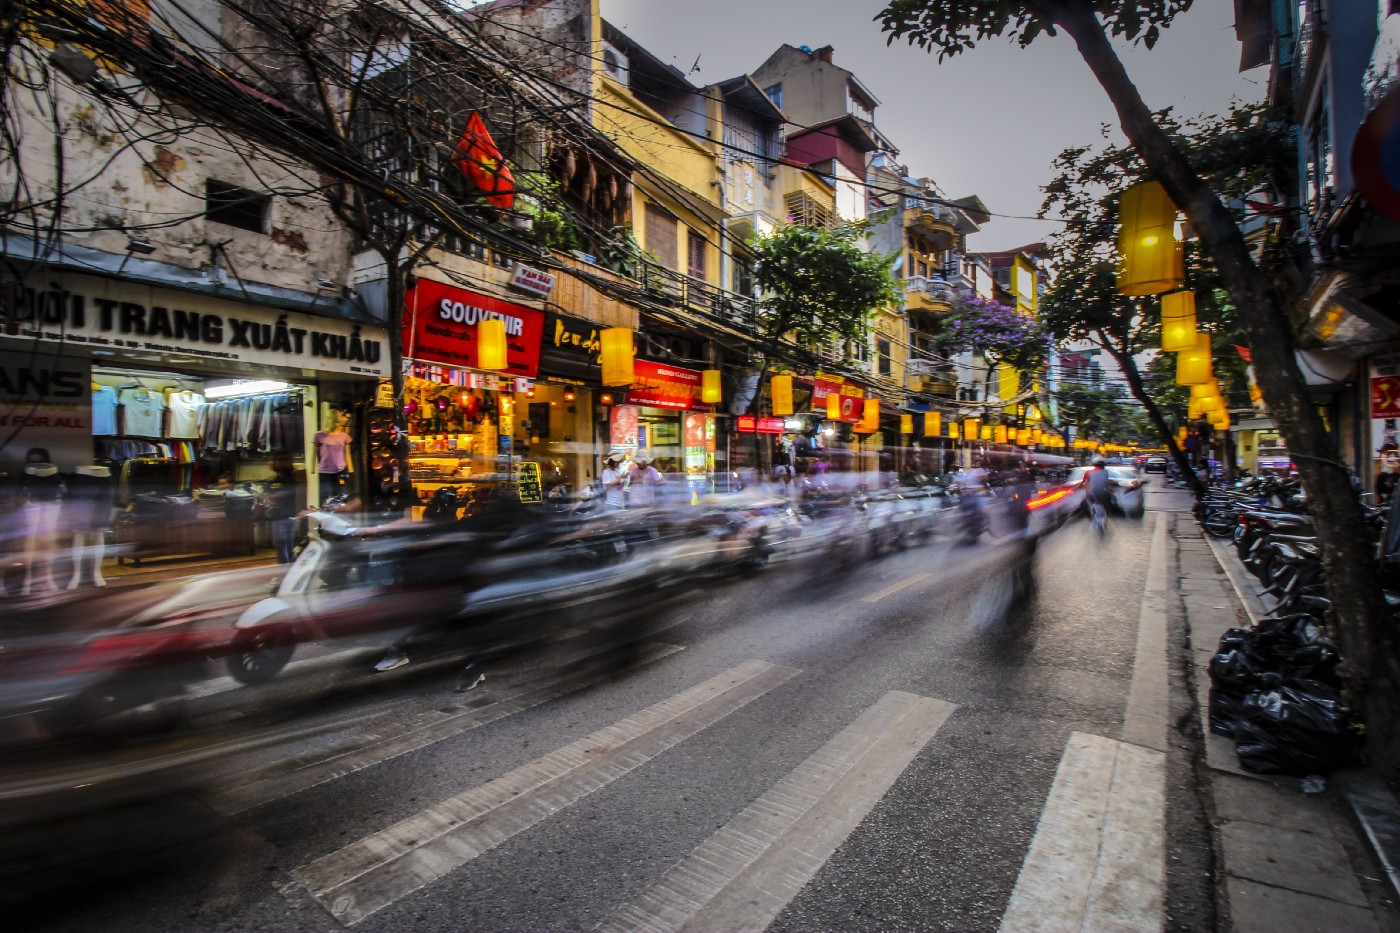 Picture of a busy city with many business. It shows a crosswalk and all the cars are blurred as they circulate very fast.